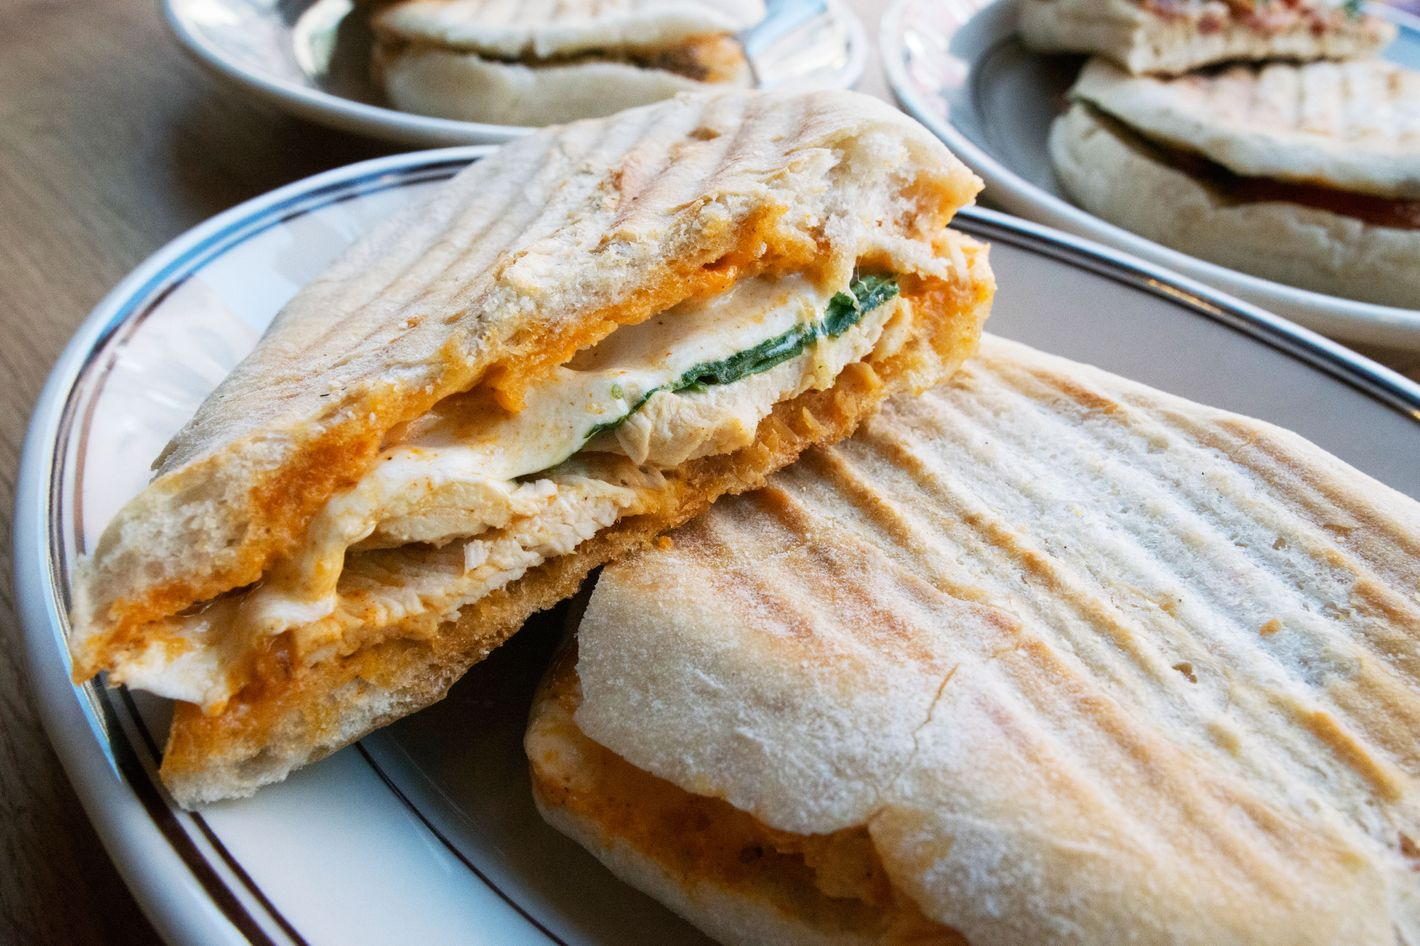 Roast-chicken panino with mozzarella, arugula, and spicy mayo. Photo ...